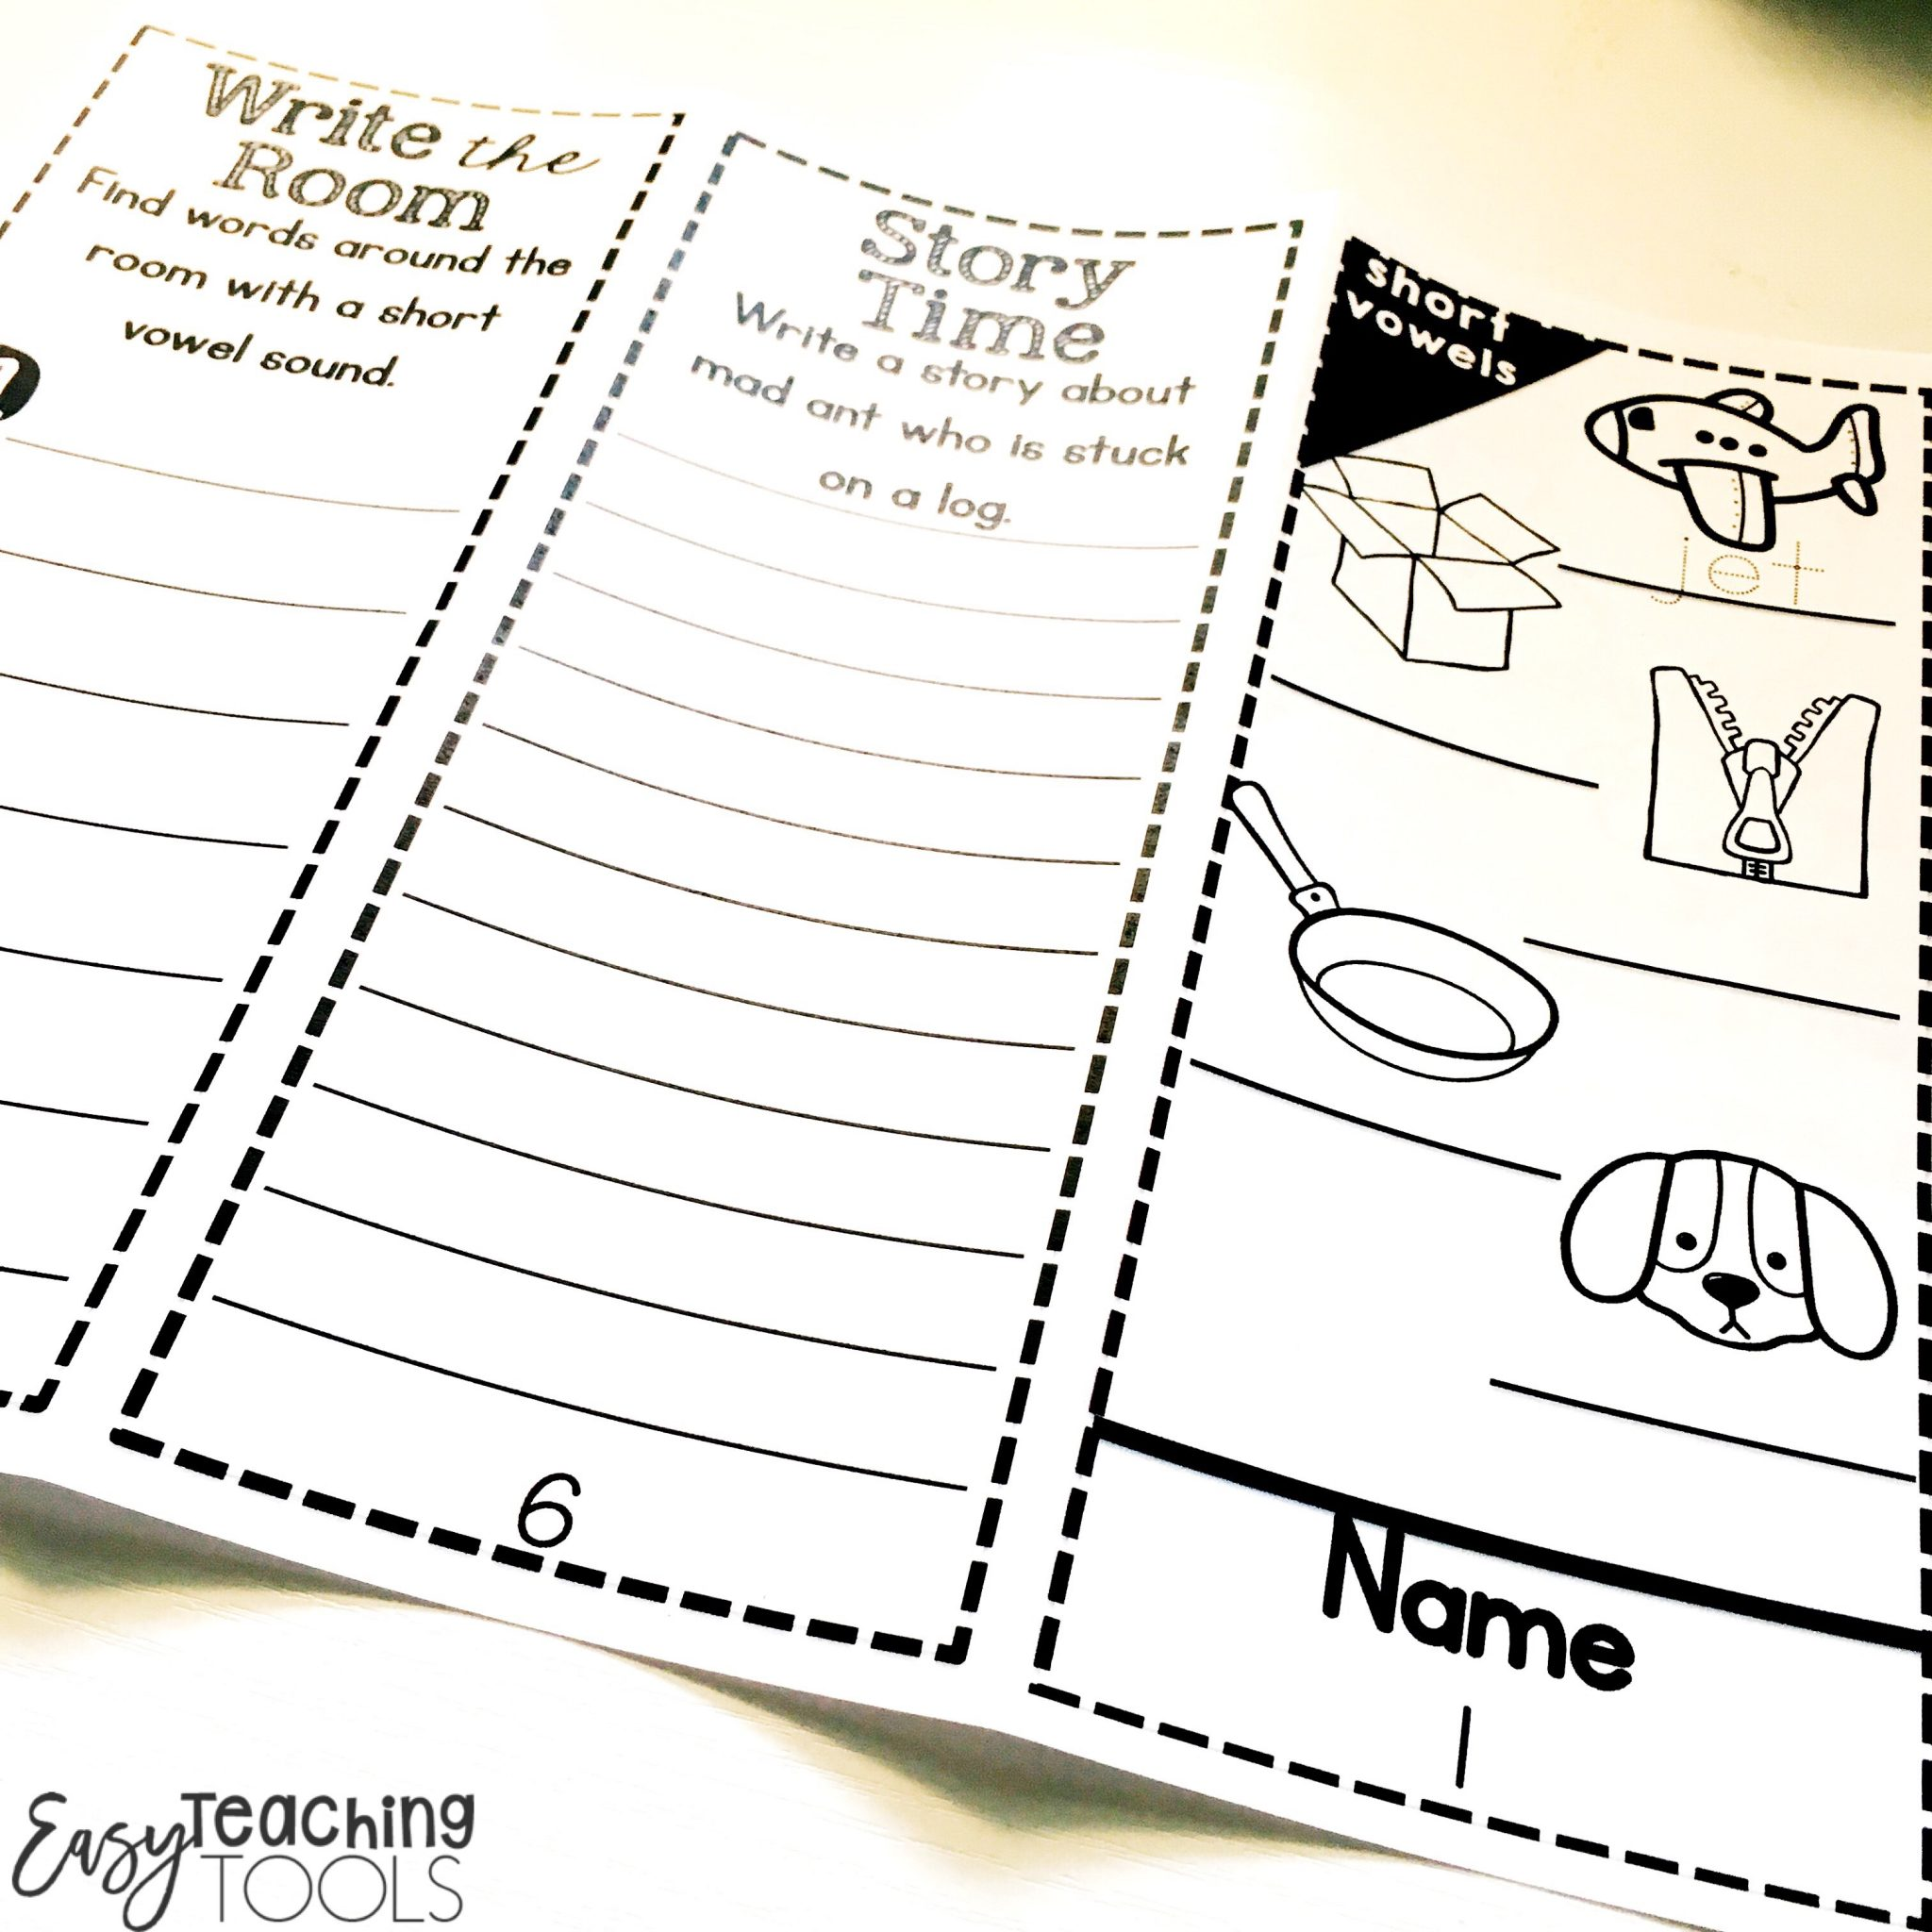 mplement these easy phonics activities and games into your classroom tomorrow.